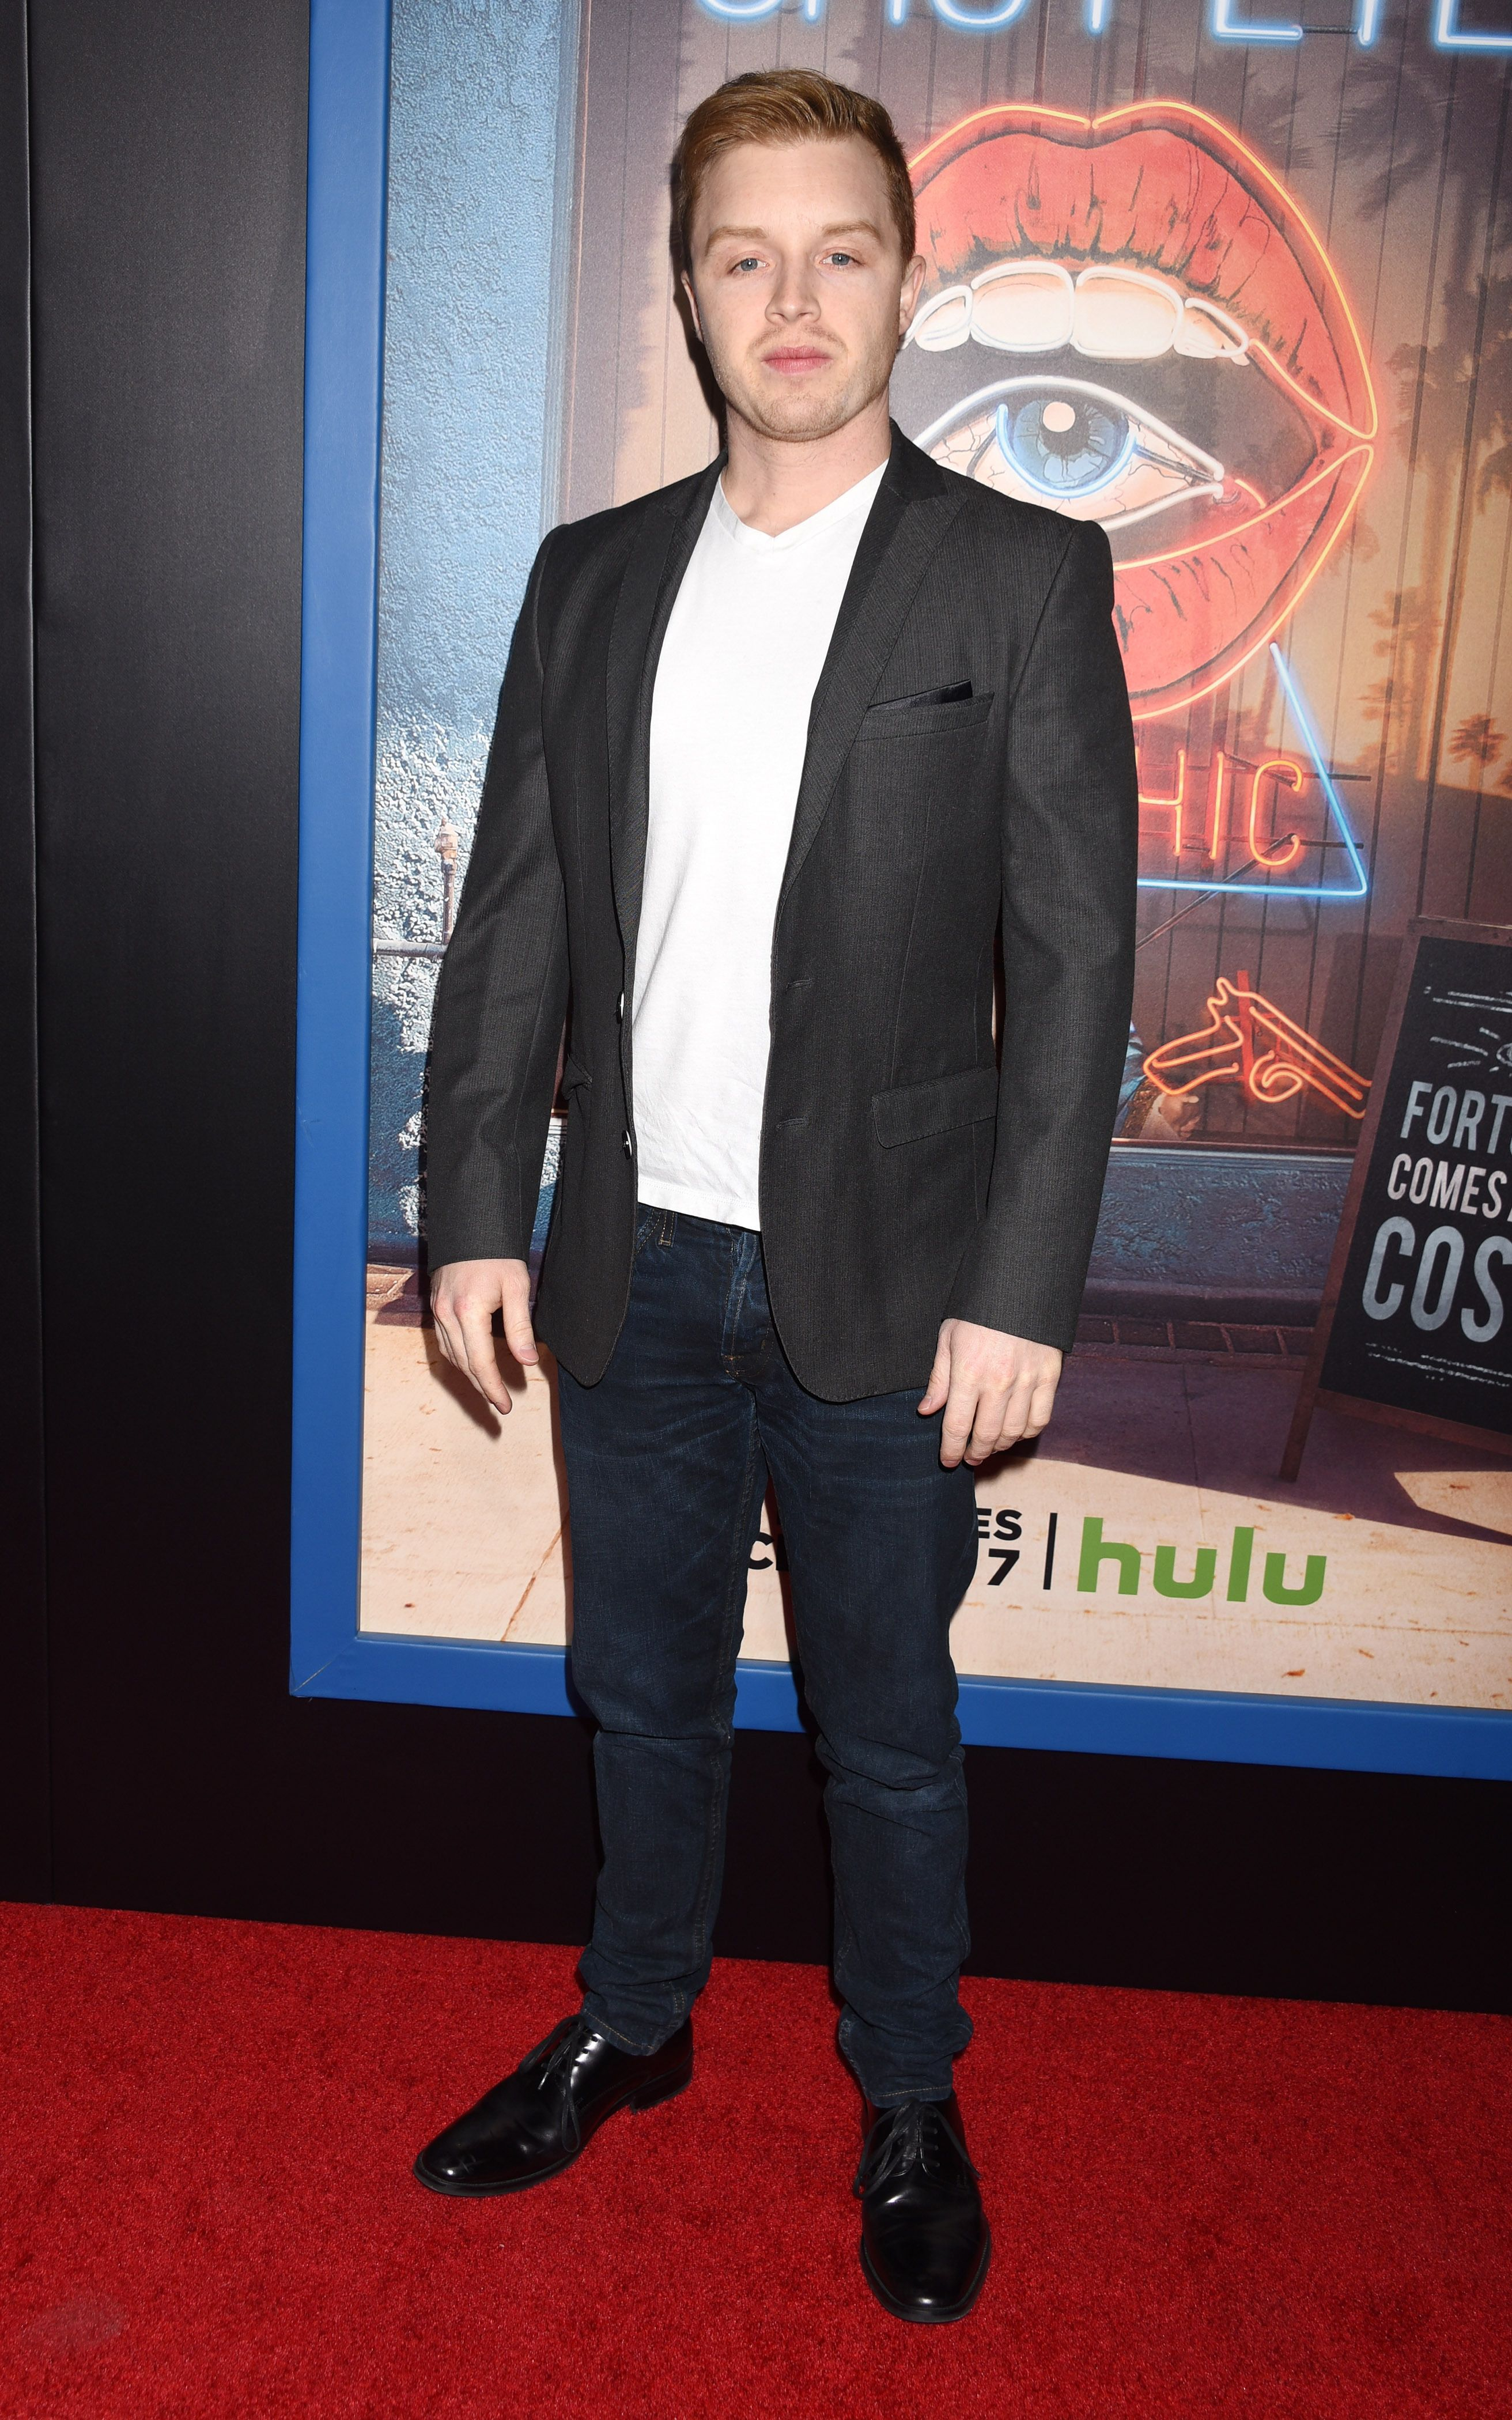 Noel Fisher wears jeans on red carpet with show poster in background.